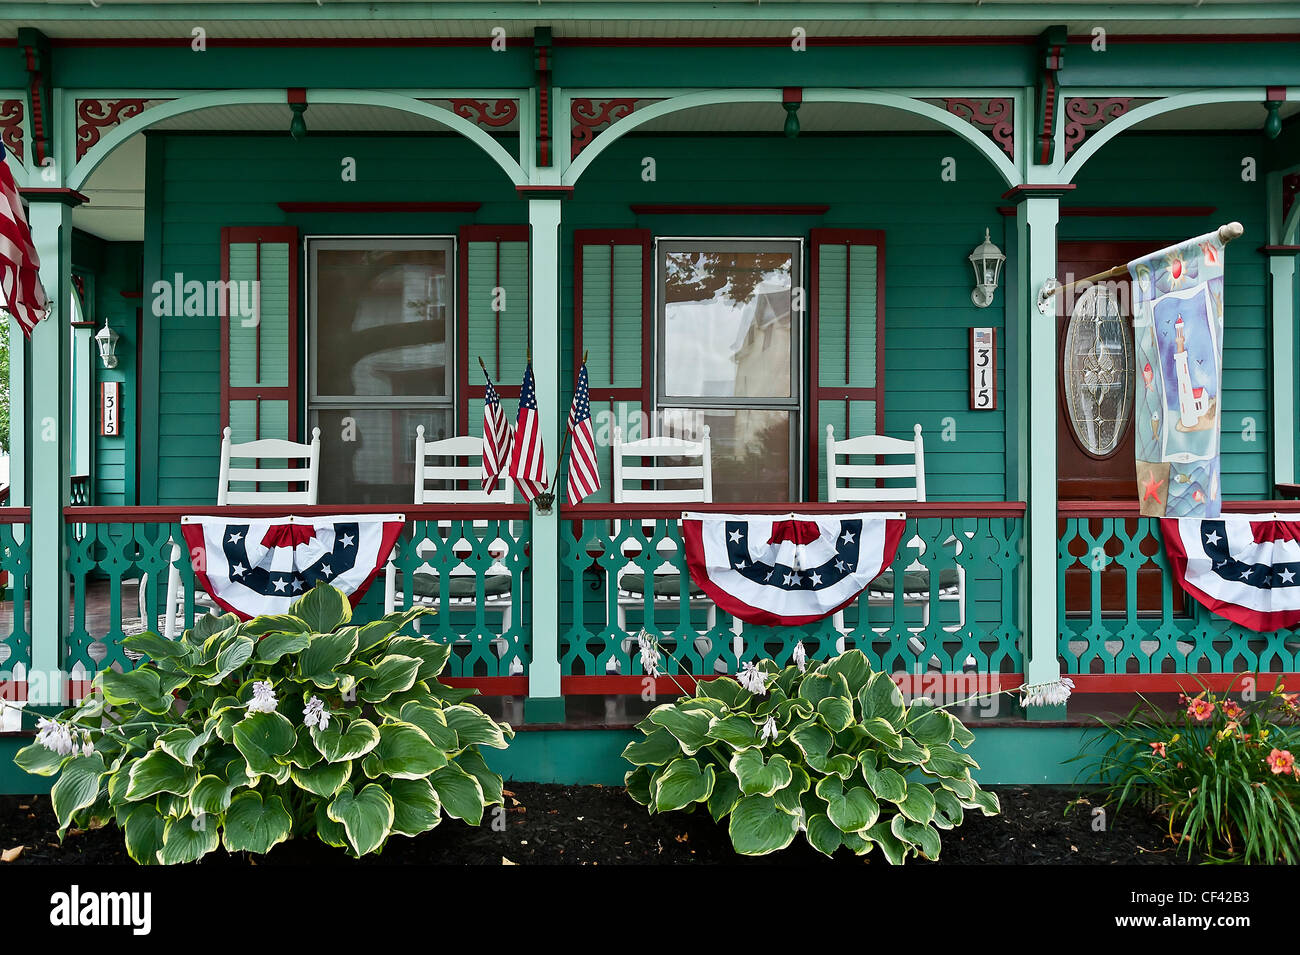 Victorian house and gardens, Cape May, NJ, USA - Stock Image